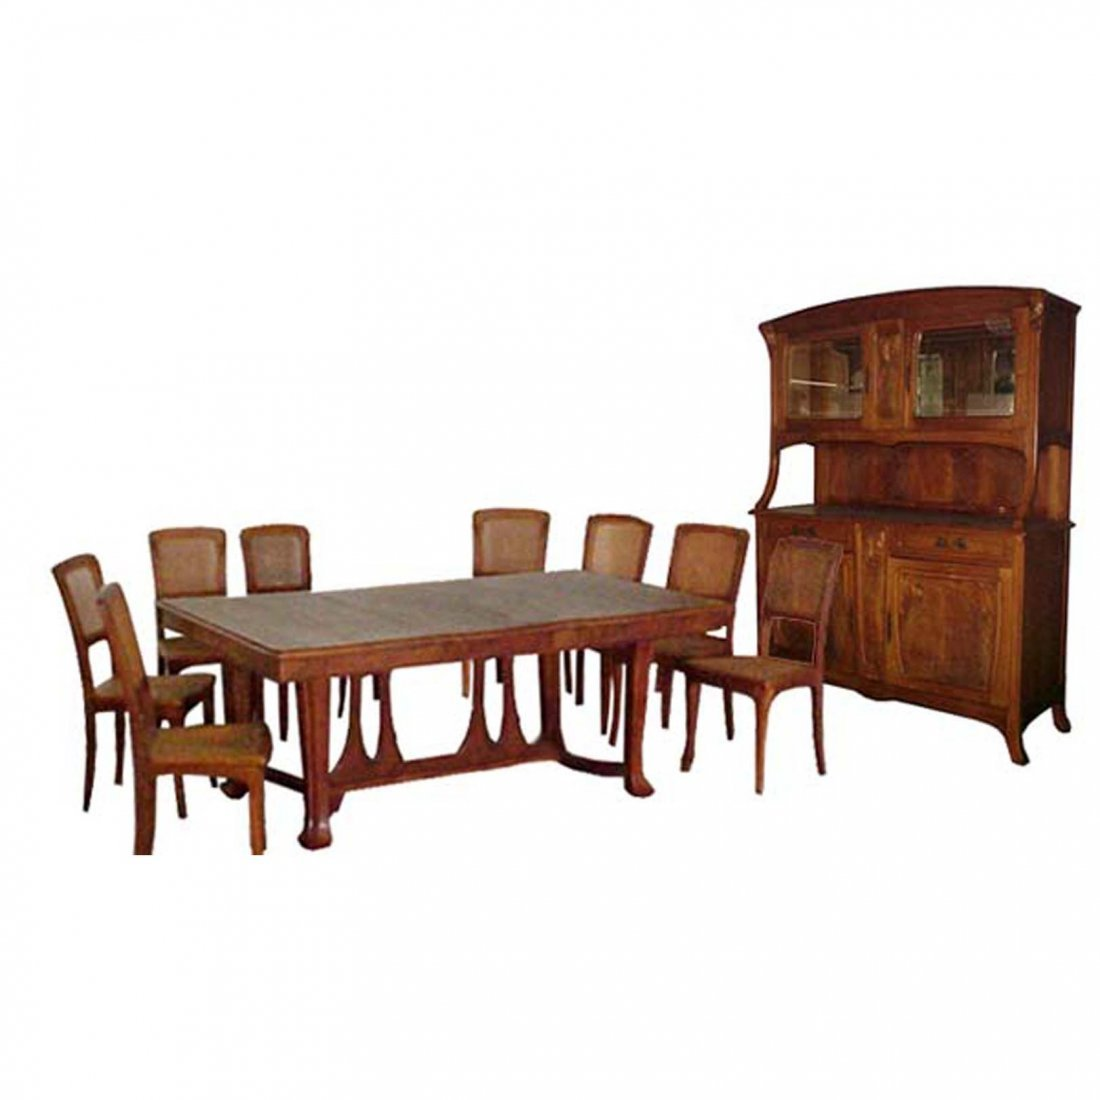 1183 French Art Nouveau Understated Dining Suite c.1900